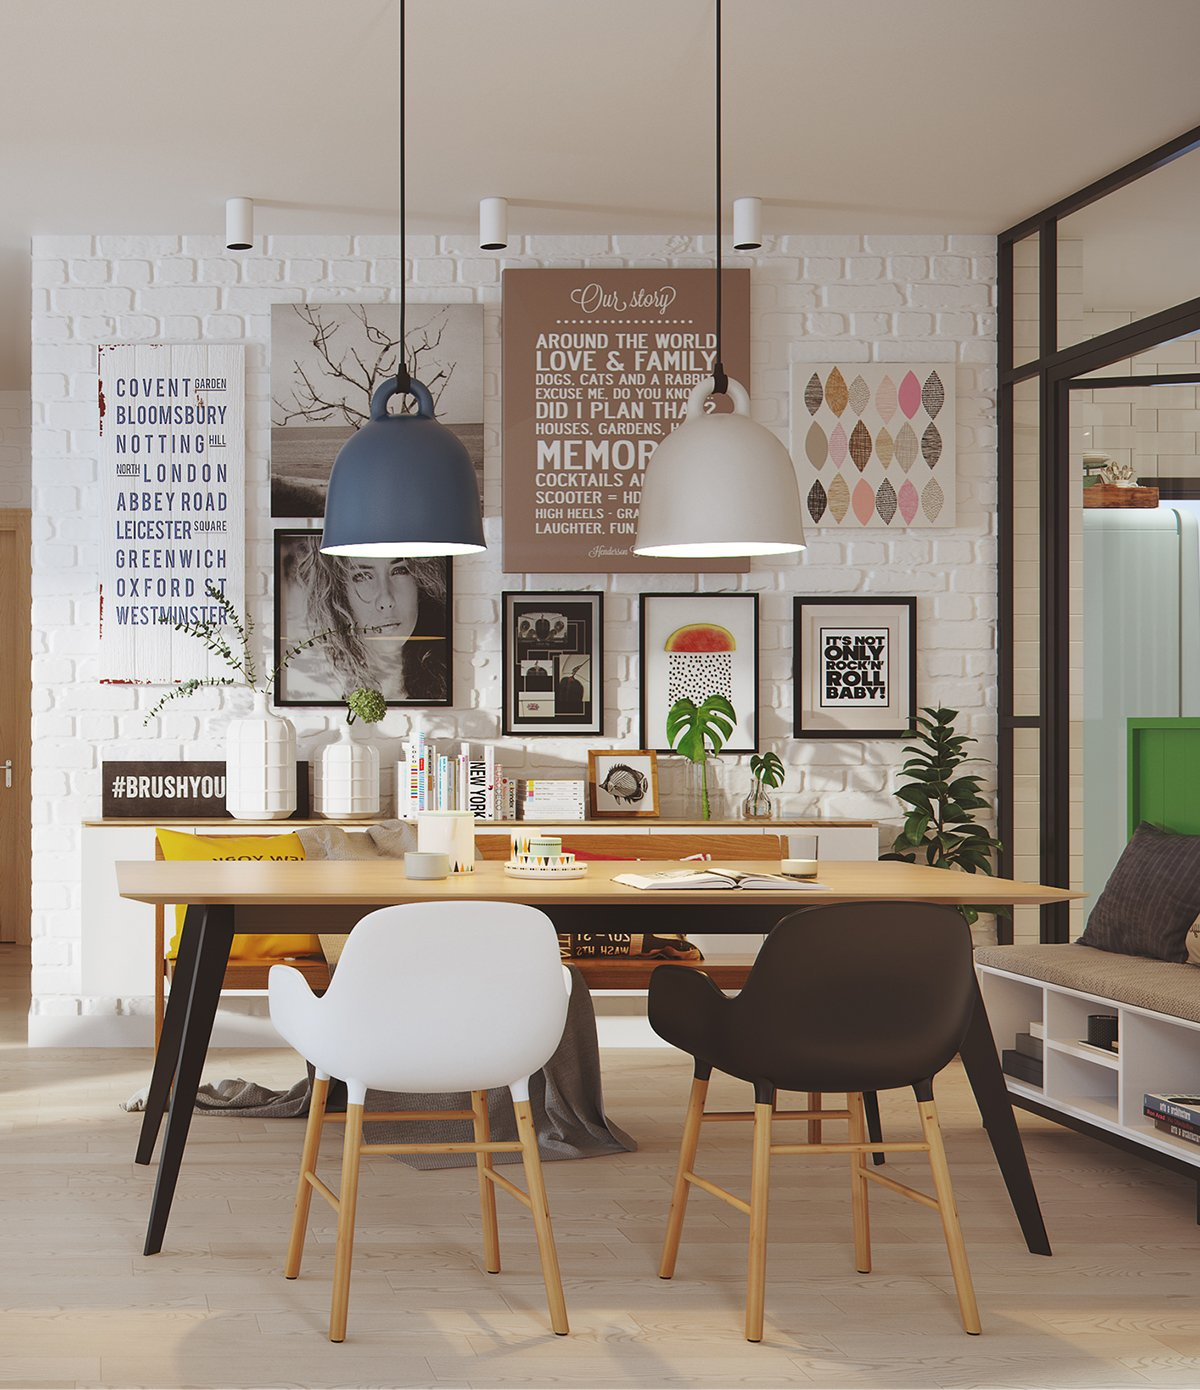 Dining Table Mix Matched Chairs White Brick - 2 stunningly beautiful homes decorated in modern scandinavian style